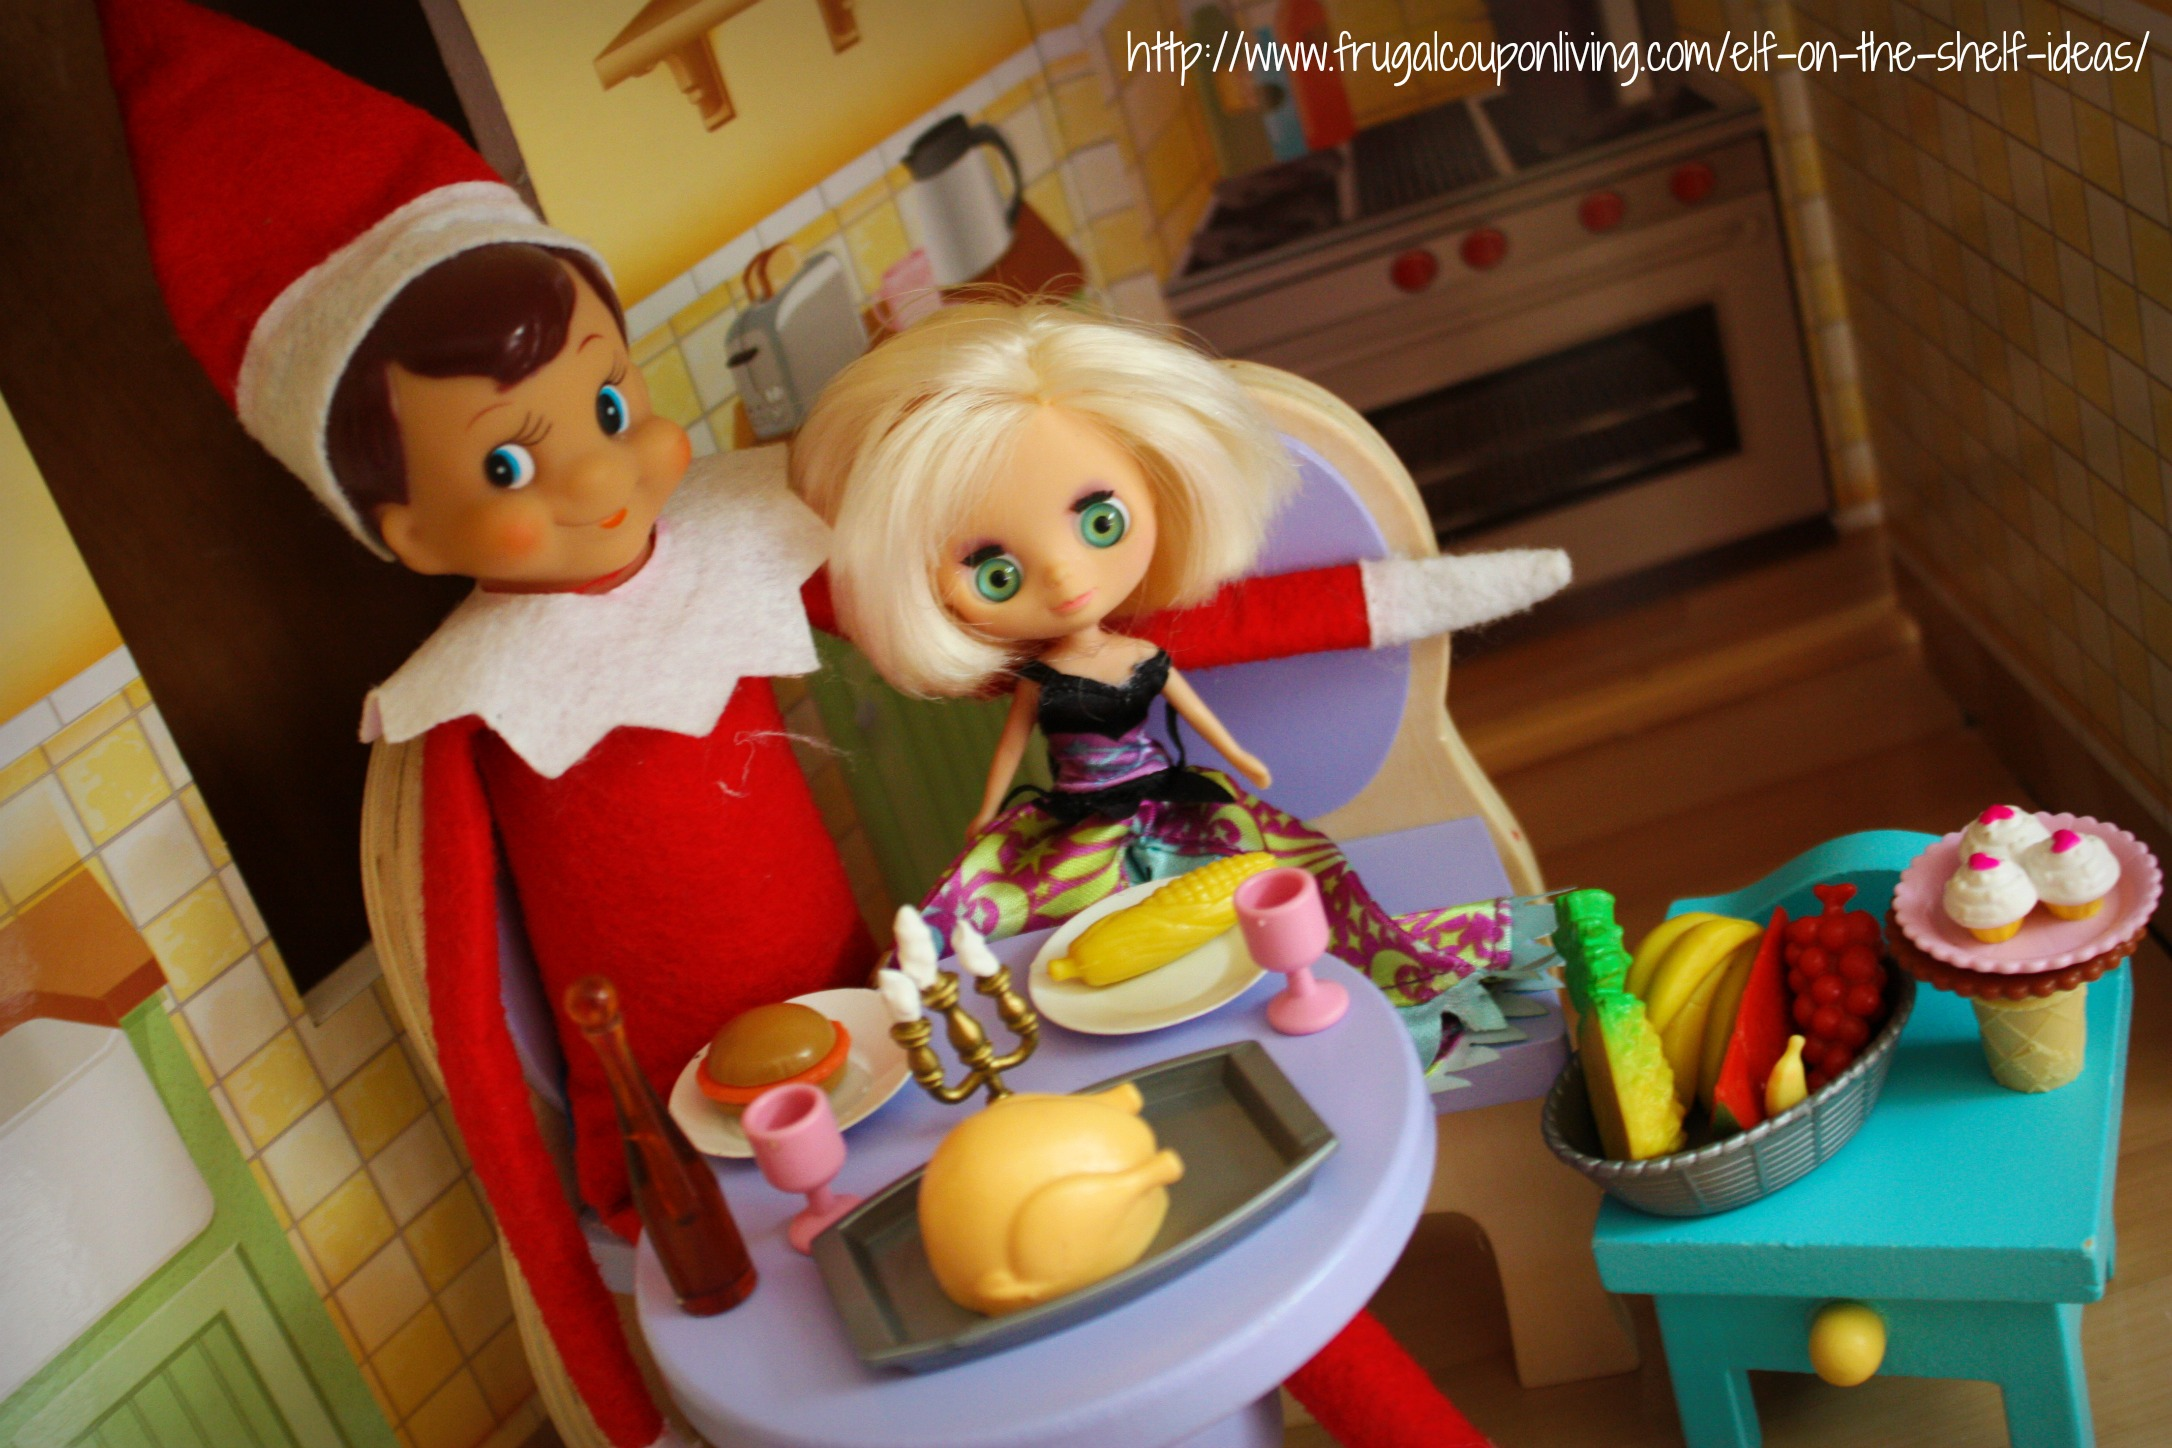 Elf on the shelf online dating picture